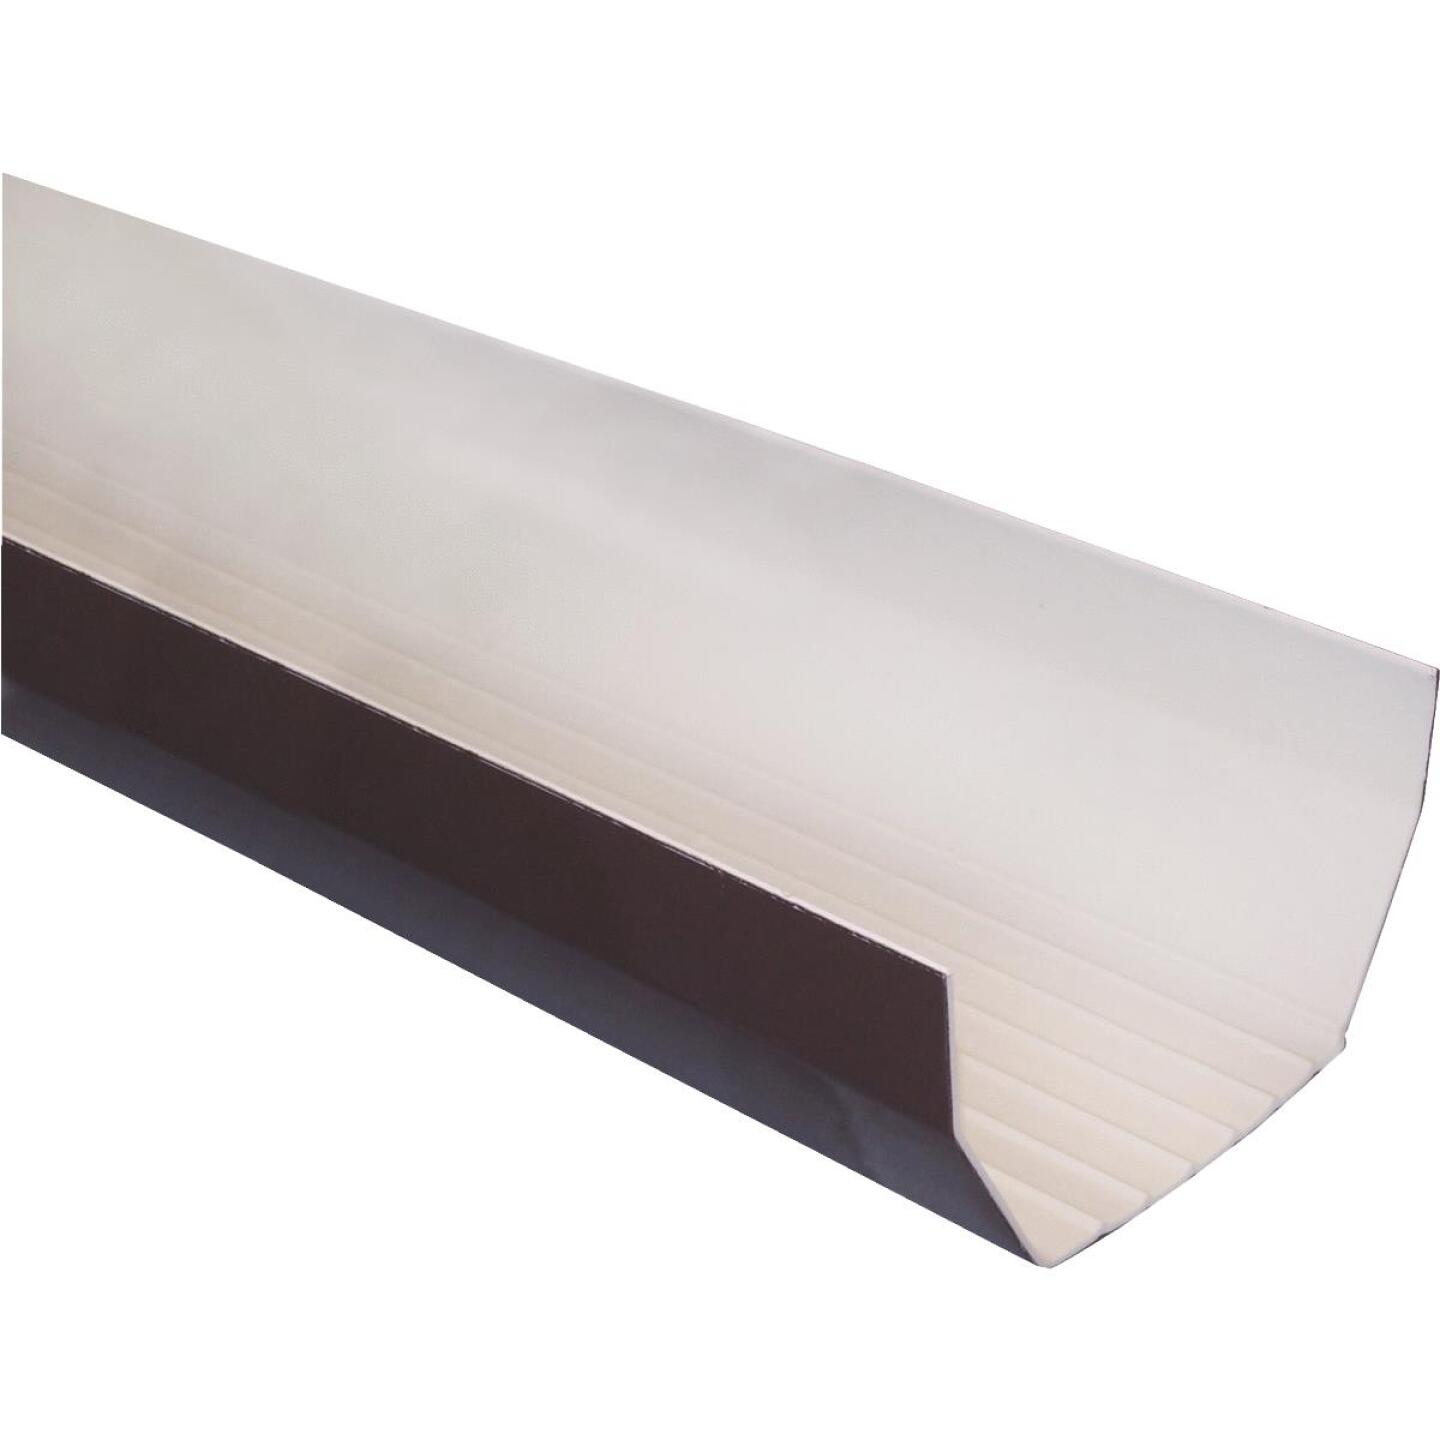 RainGo 5 In. x 10 Ft. Brown Vinyl Gutter Image 1